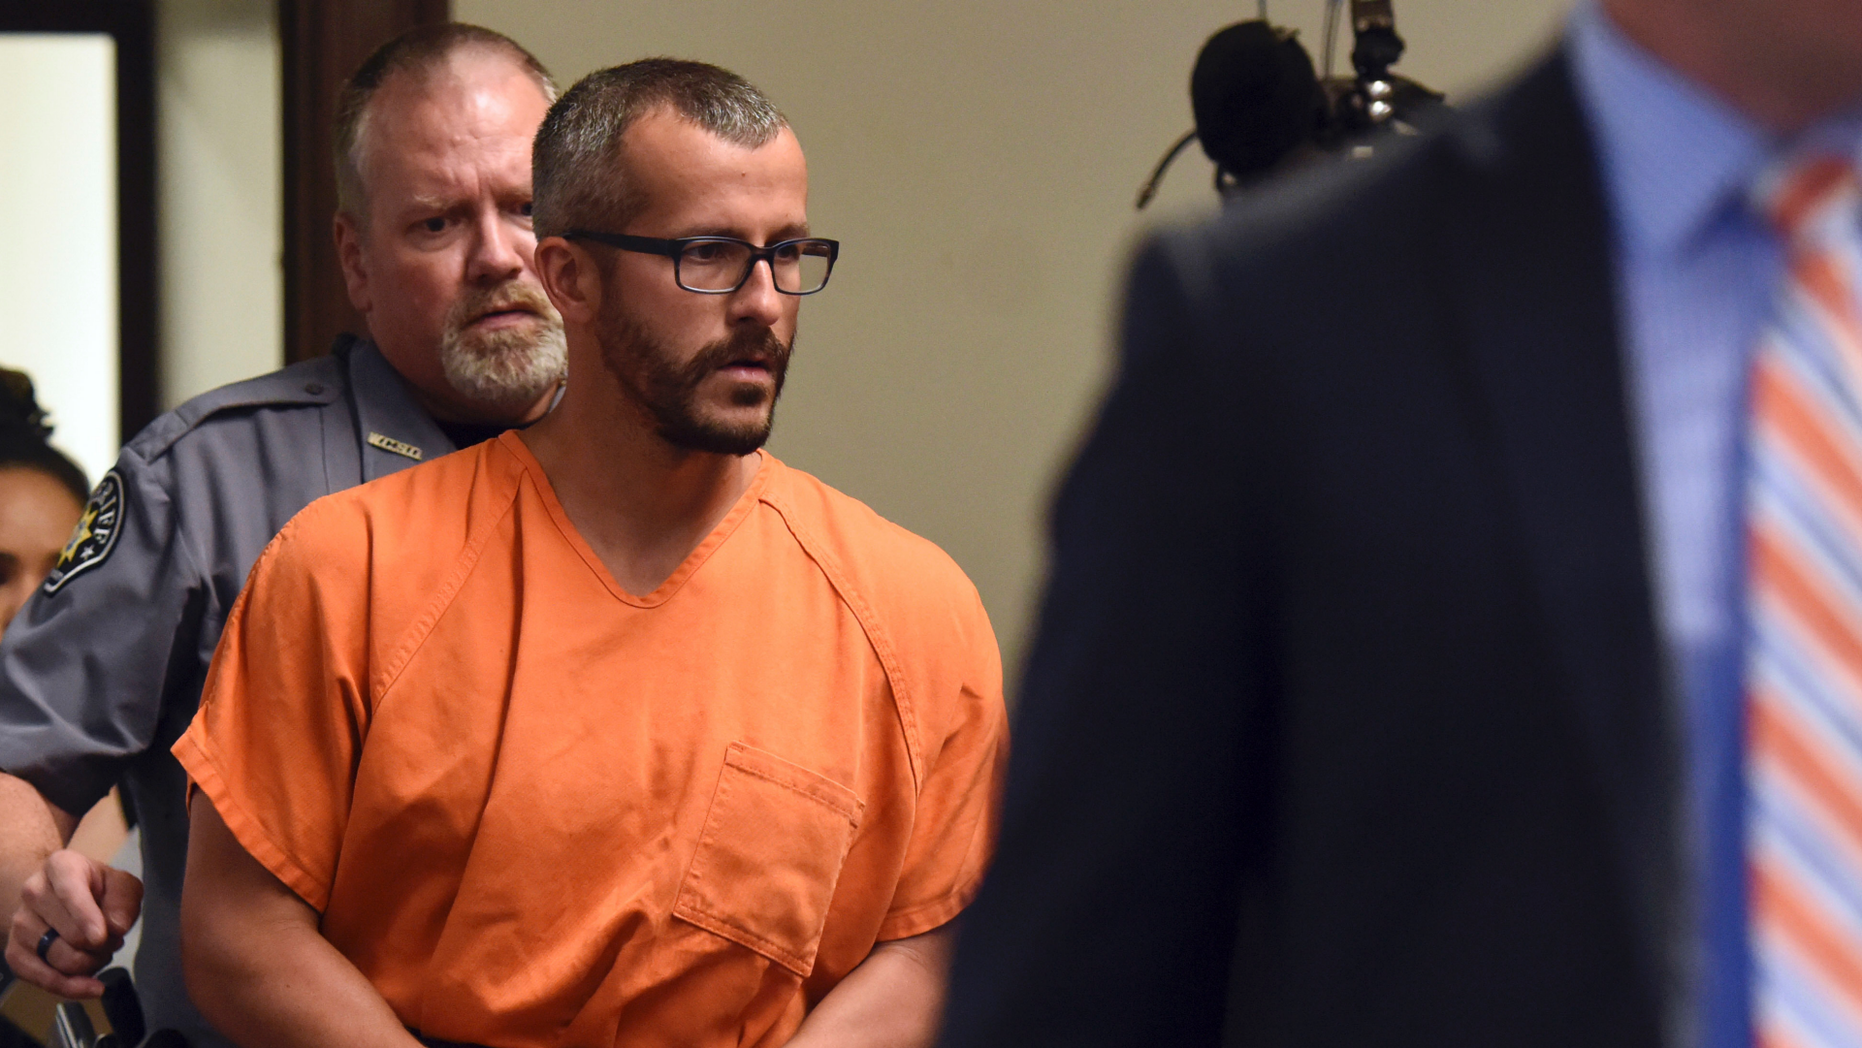 Chris Watts to be sentenced Monday for killing pregnant wife, 2 daughters